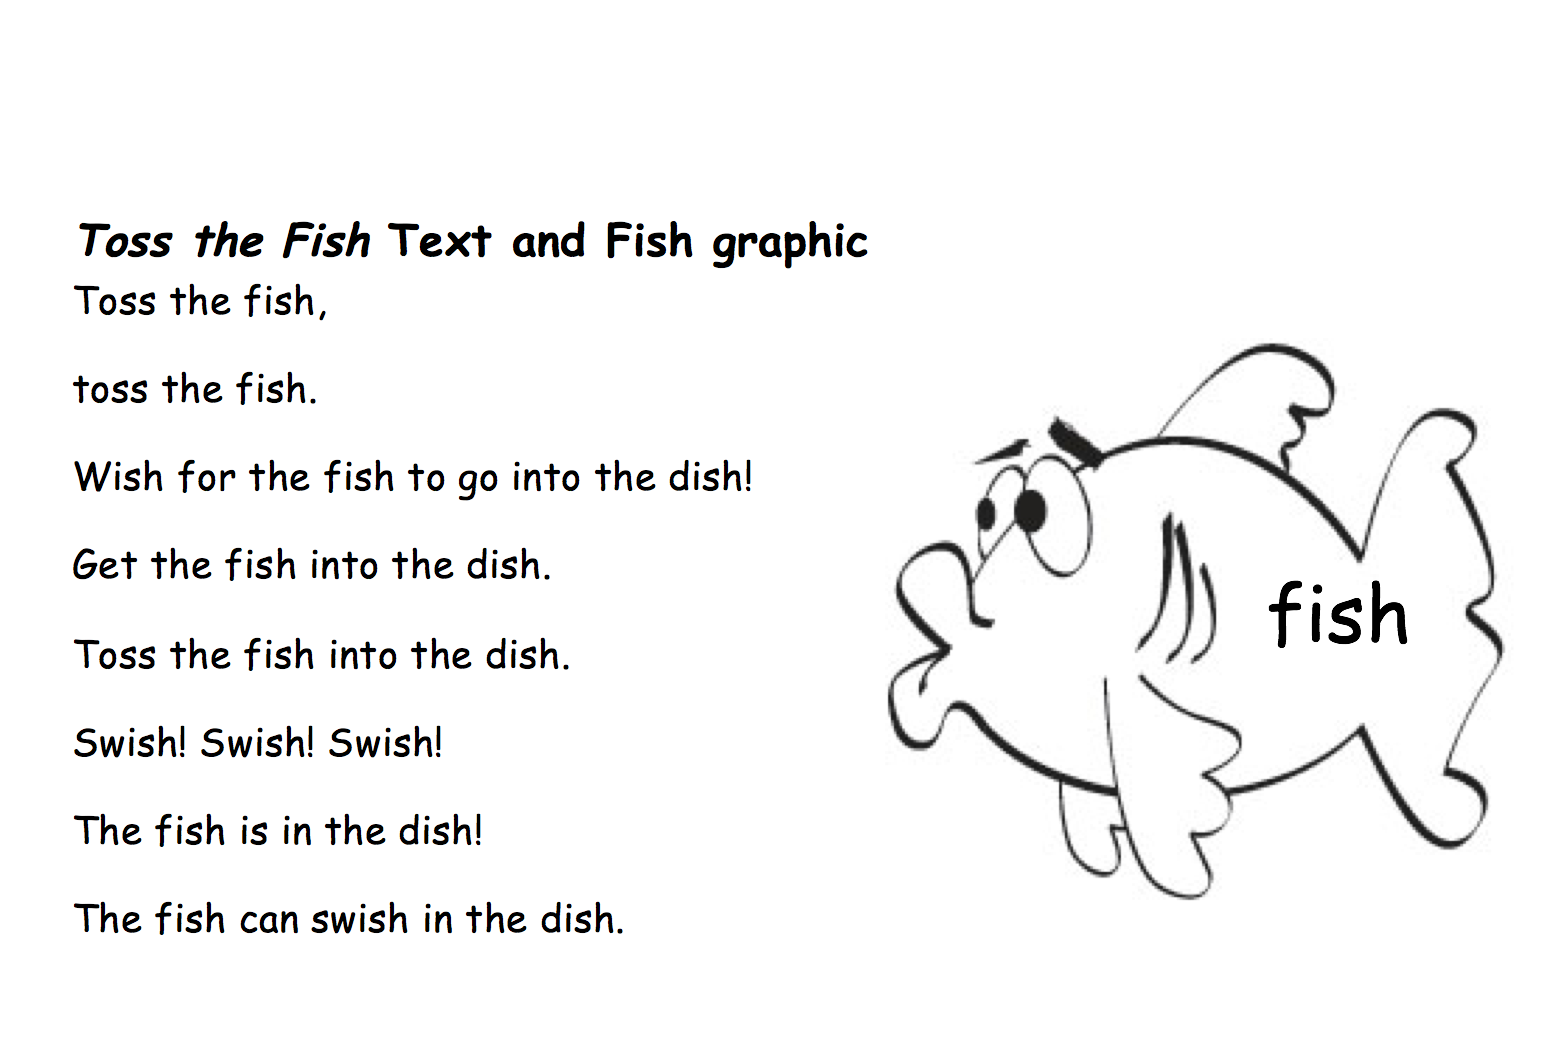 toss-the-fish-text-and-fish-graphic